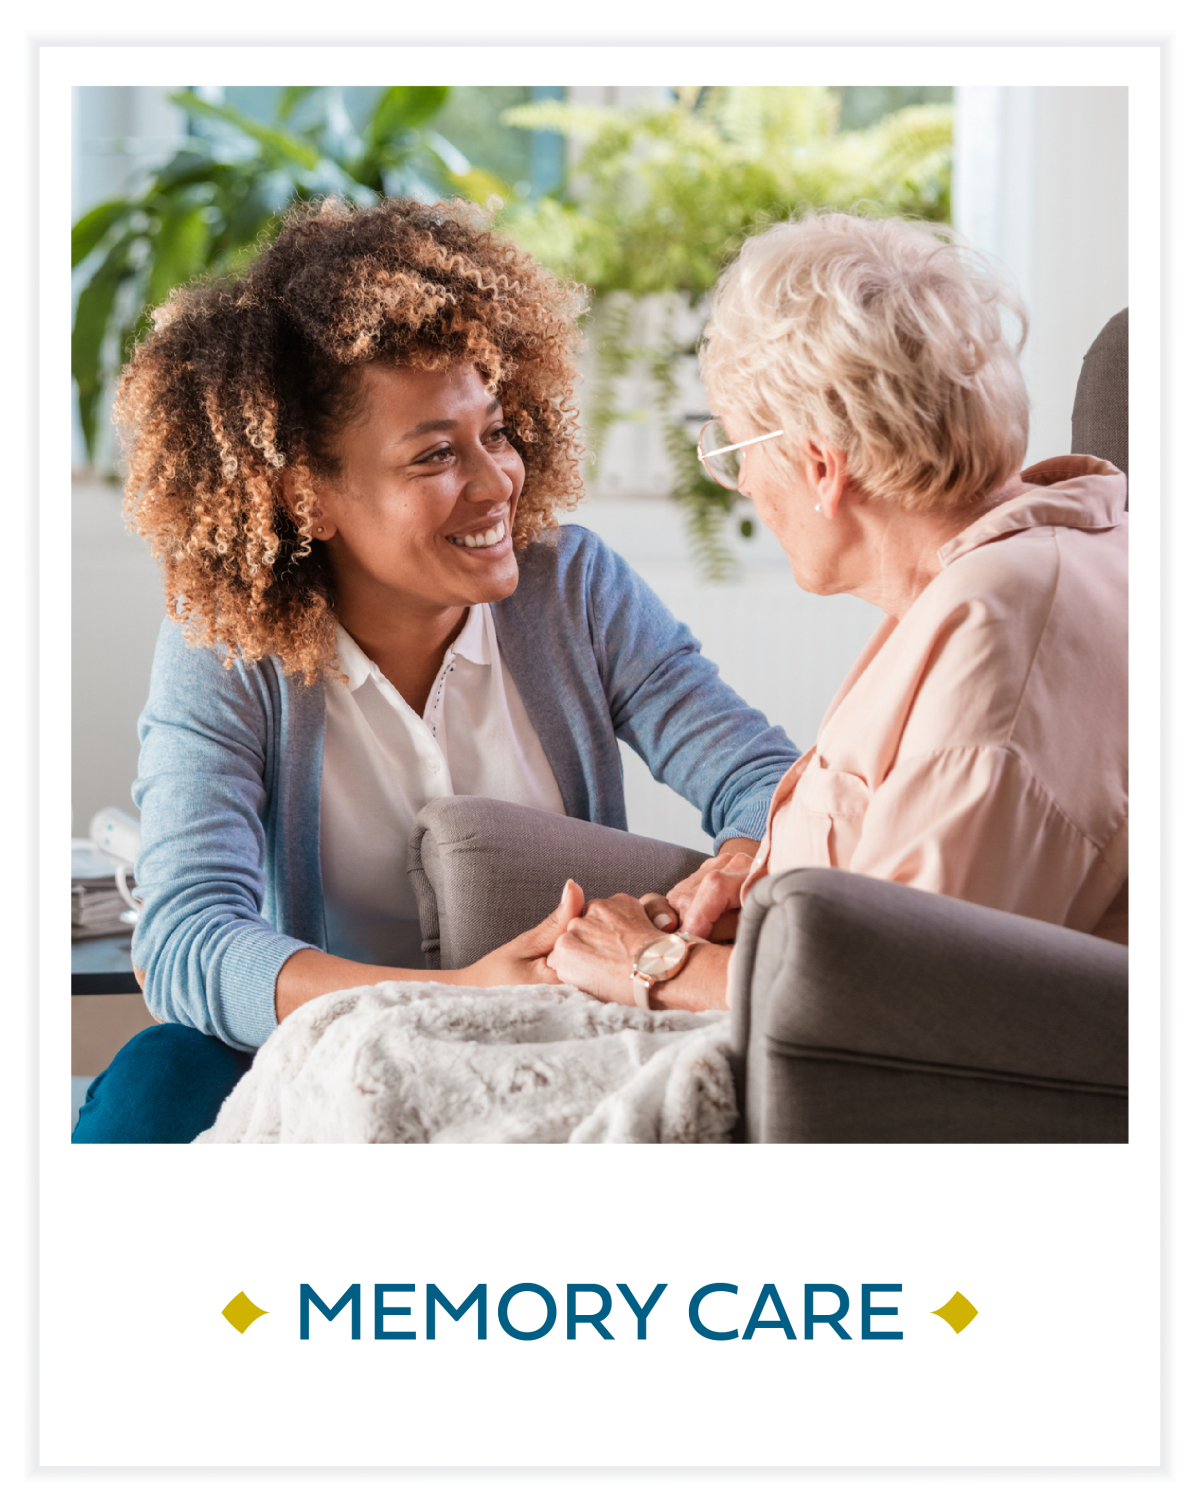 Memory care at Broadwell Senior Living in Plymouth, Minnesota